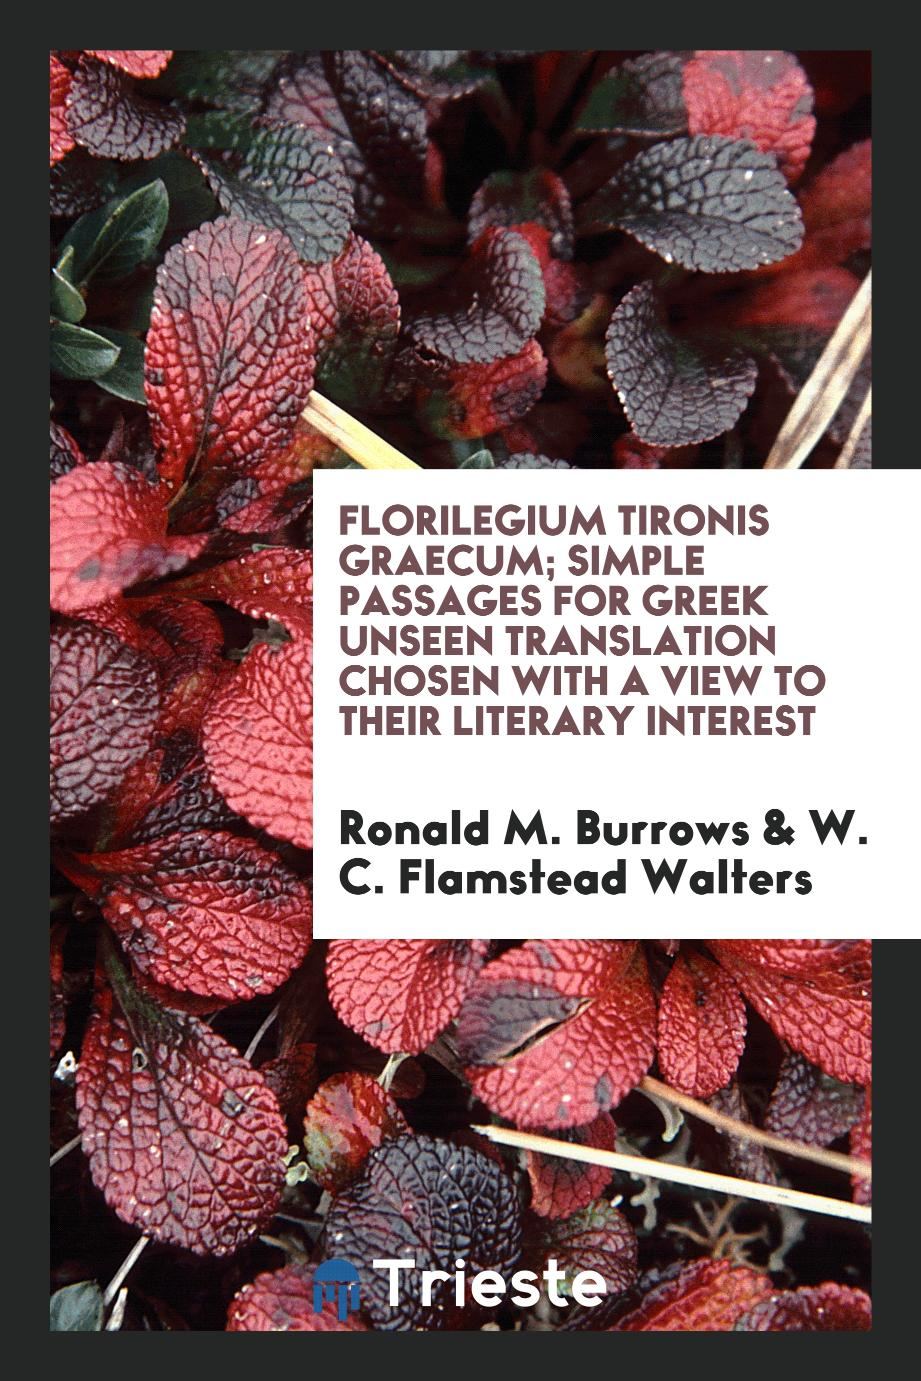 Florilegium tironis graecum; simple passages for Greek unseen translation chosen with a view to their literary interest